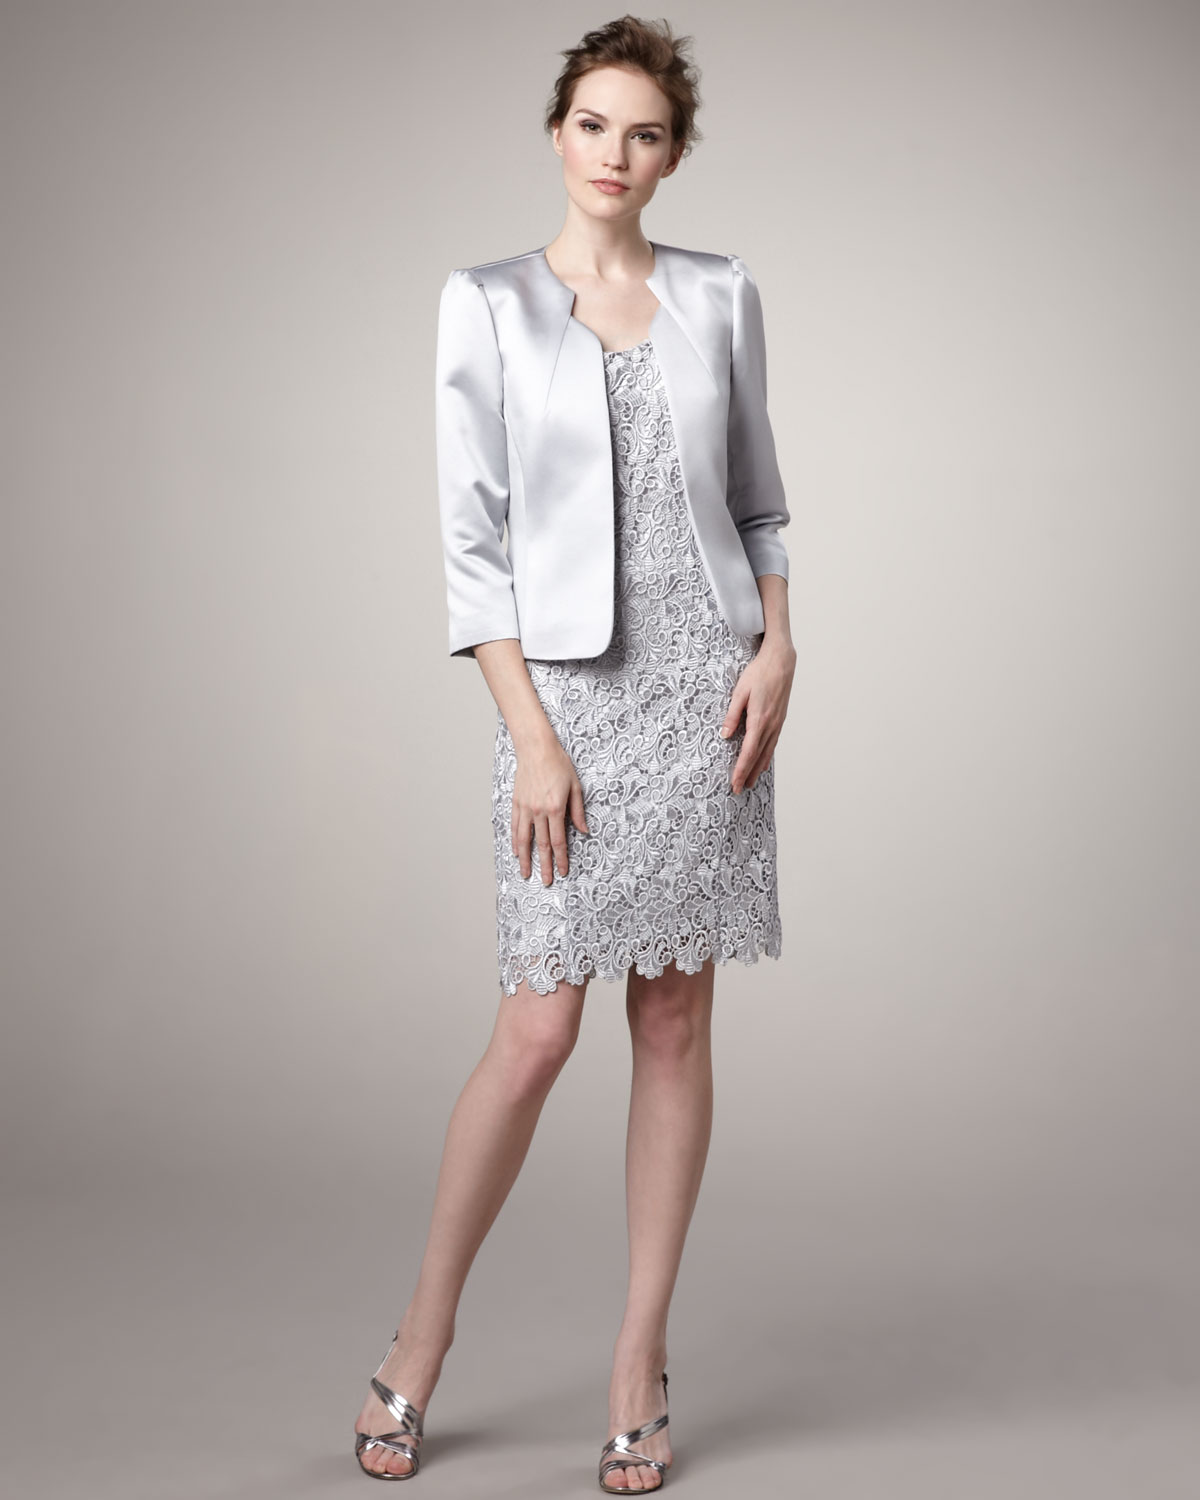 Silver Jacket Dress Jacket To